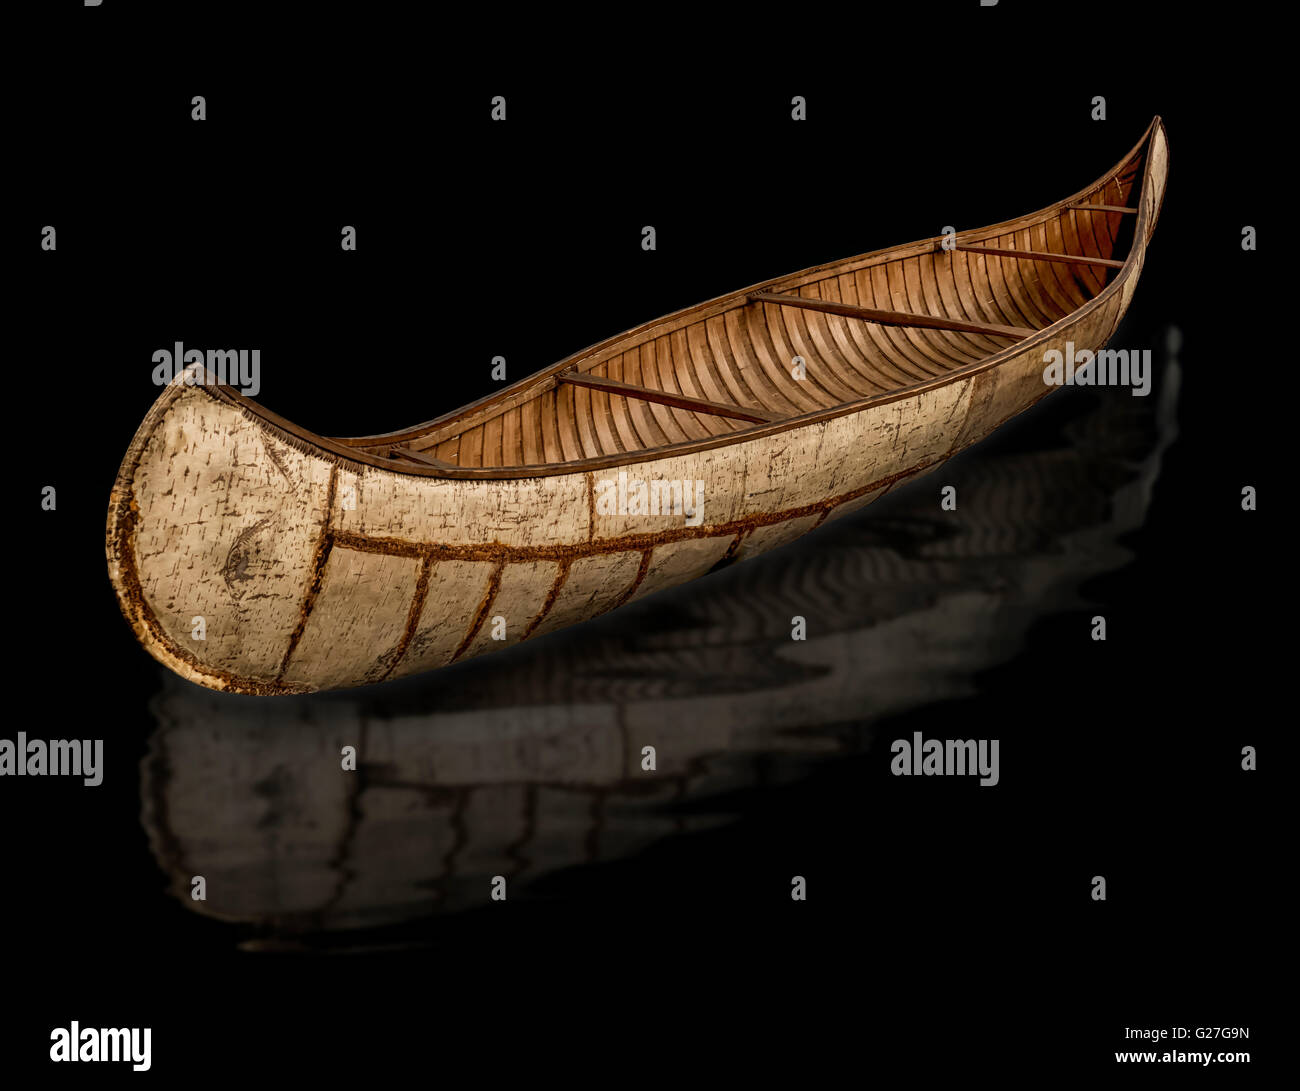 A crooked Birch bark canoe from the southern Hudson Bay area of Canada.Of the type built by the Cree Nation Tribes - Stock Image